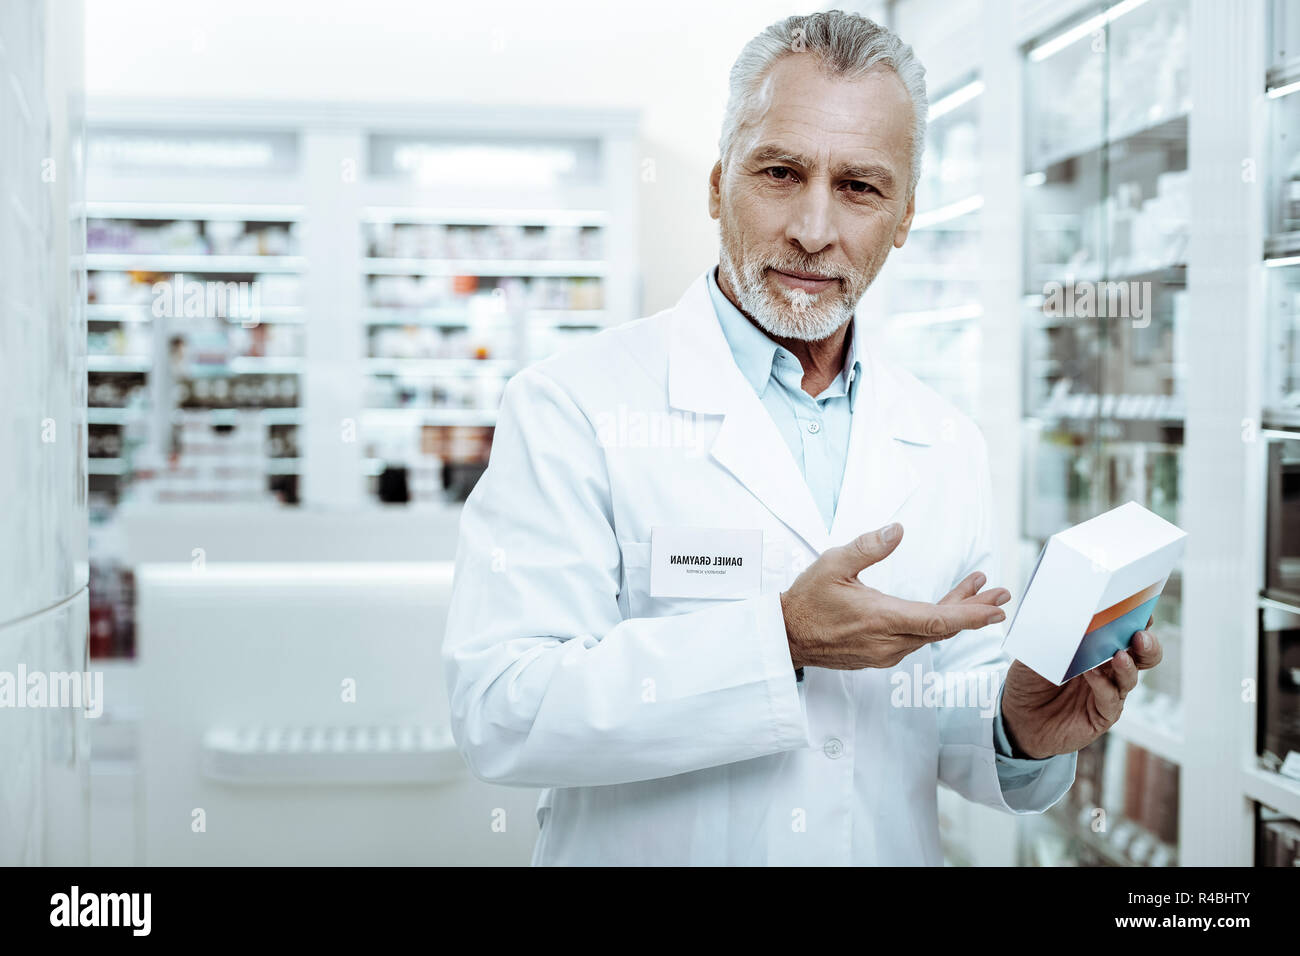 I recommend. Handsome gray-haired man demonstrating medicine while looking at camera - Stock Image